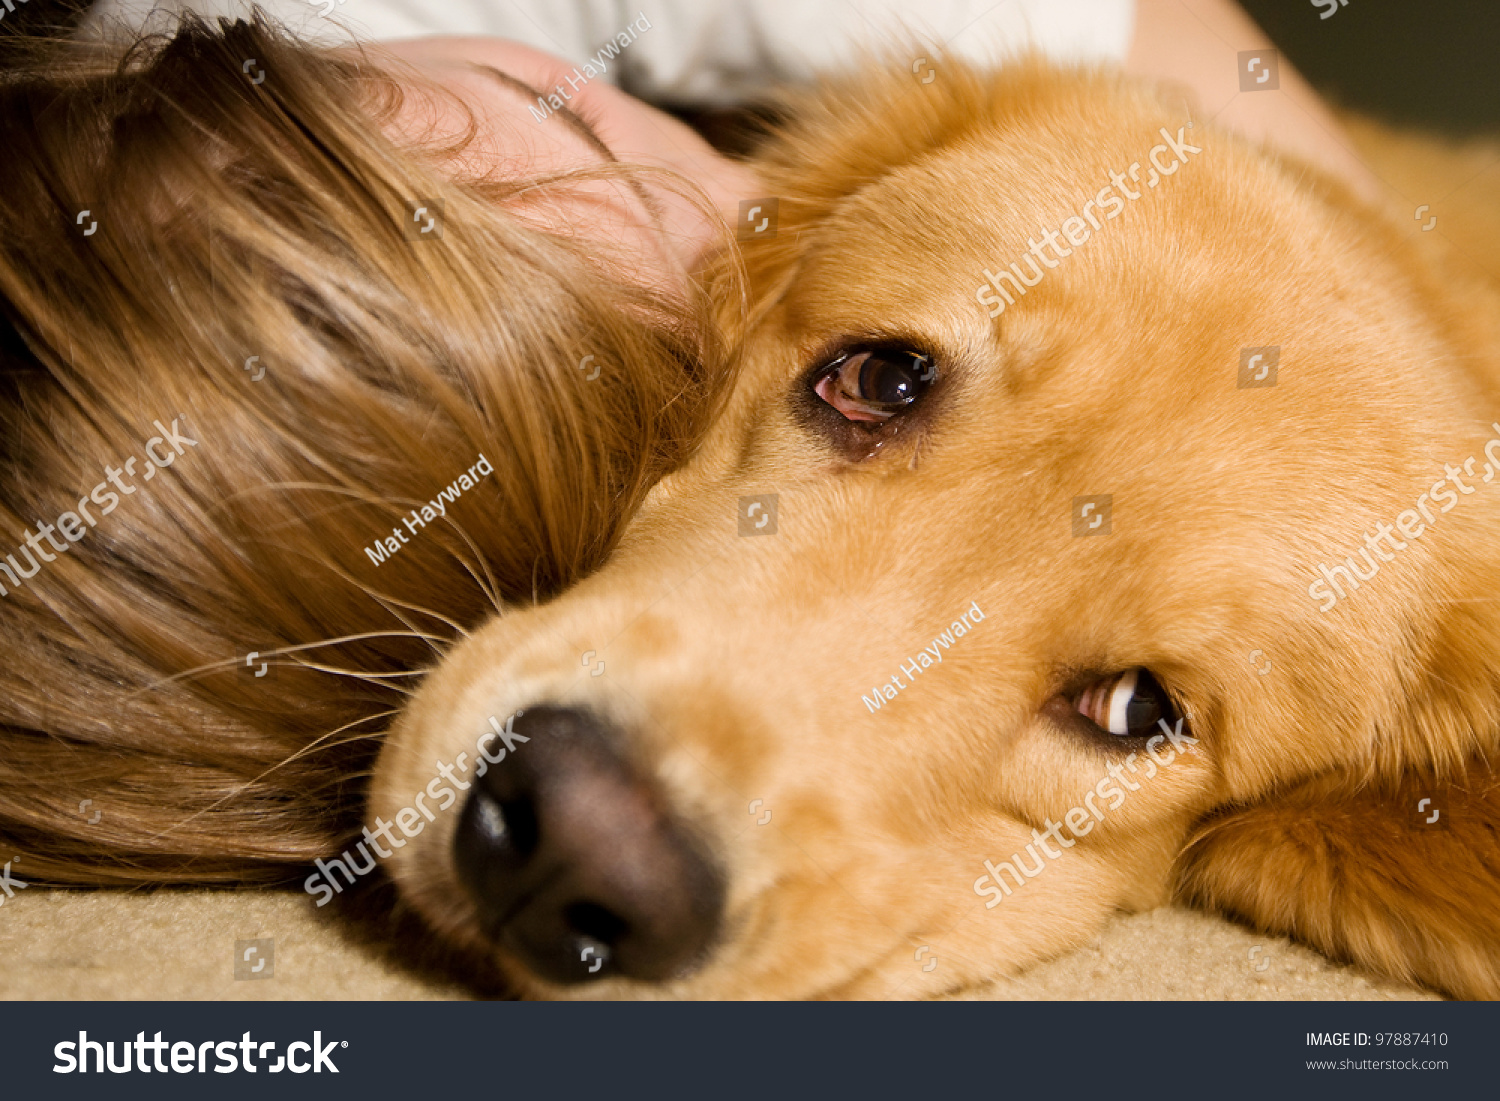 Young Girl Sound Asleep Snuggled Her Stock Photo Edit Now 97887410